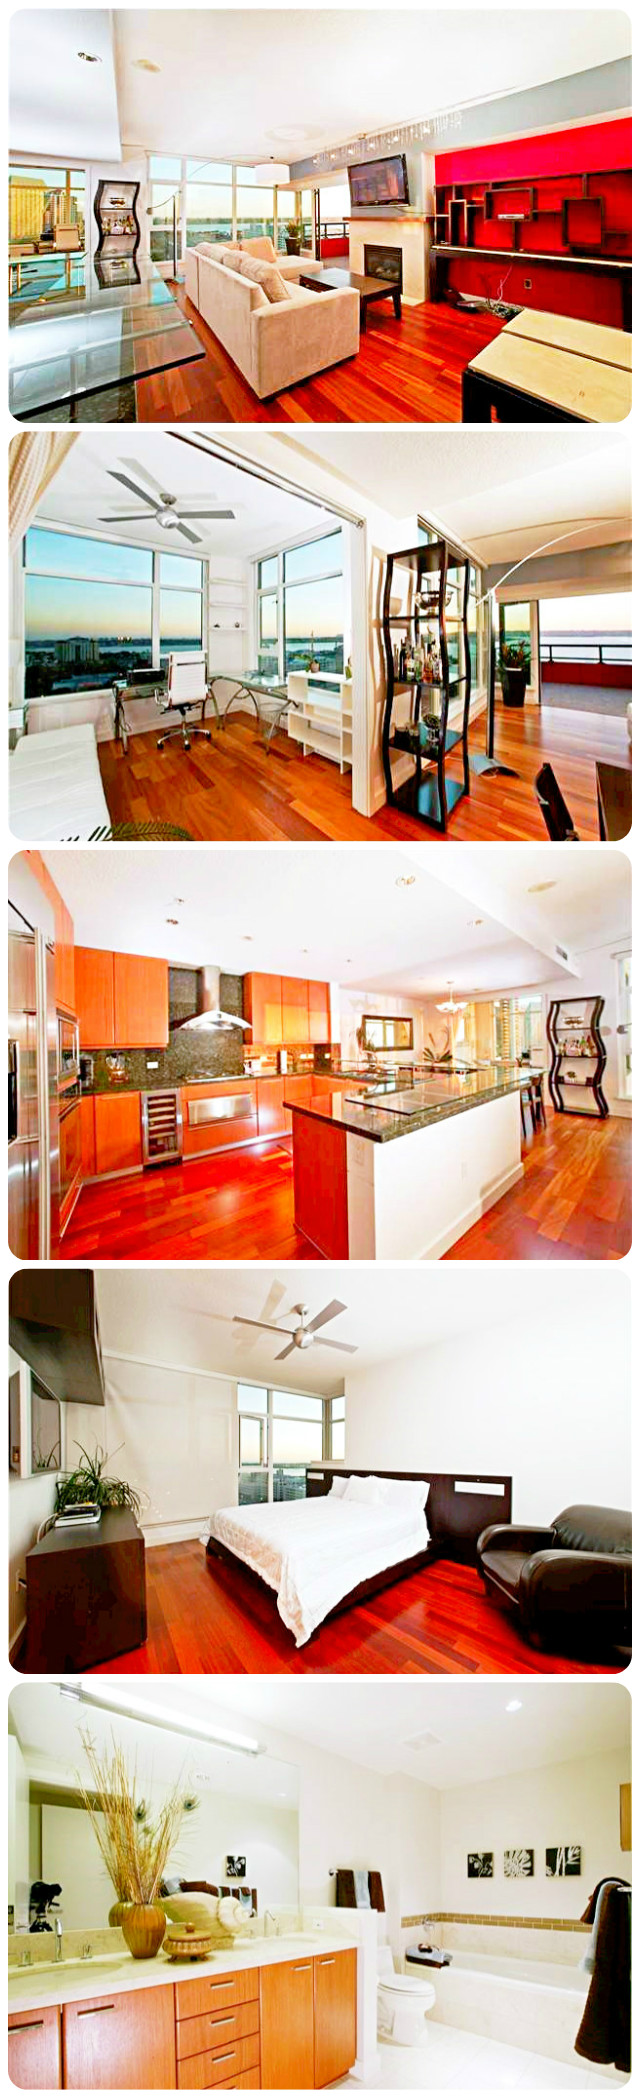 3 bedroom unit in a premier Residential Tower